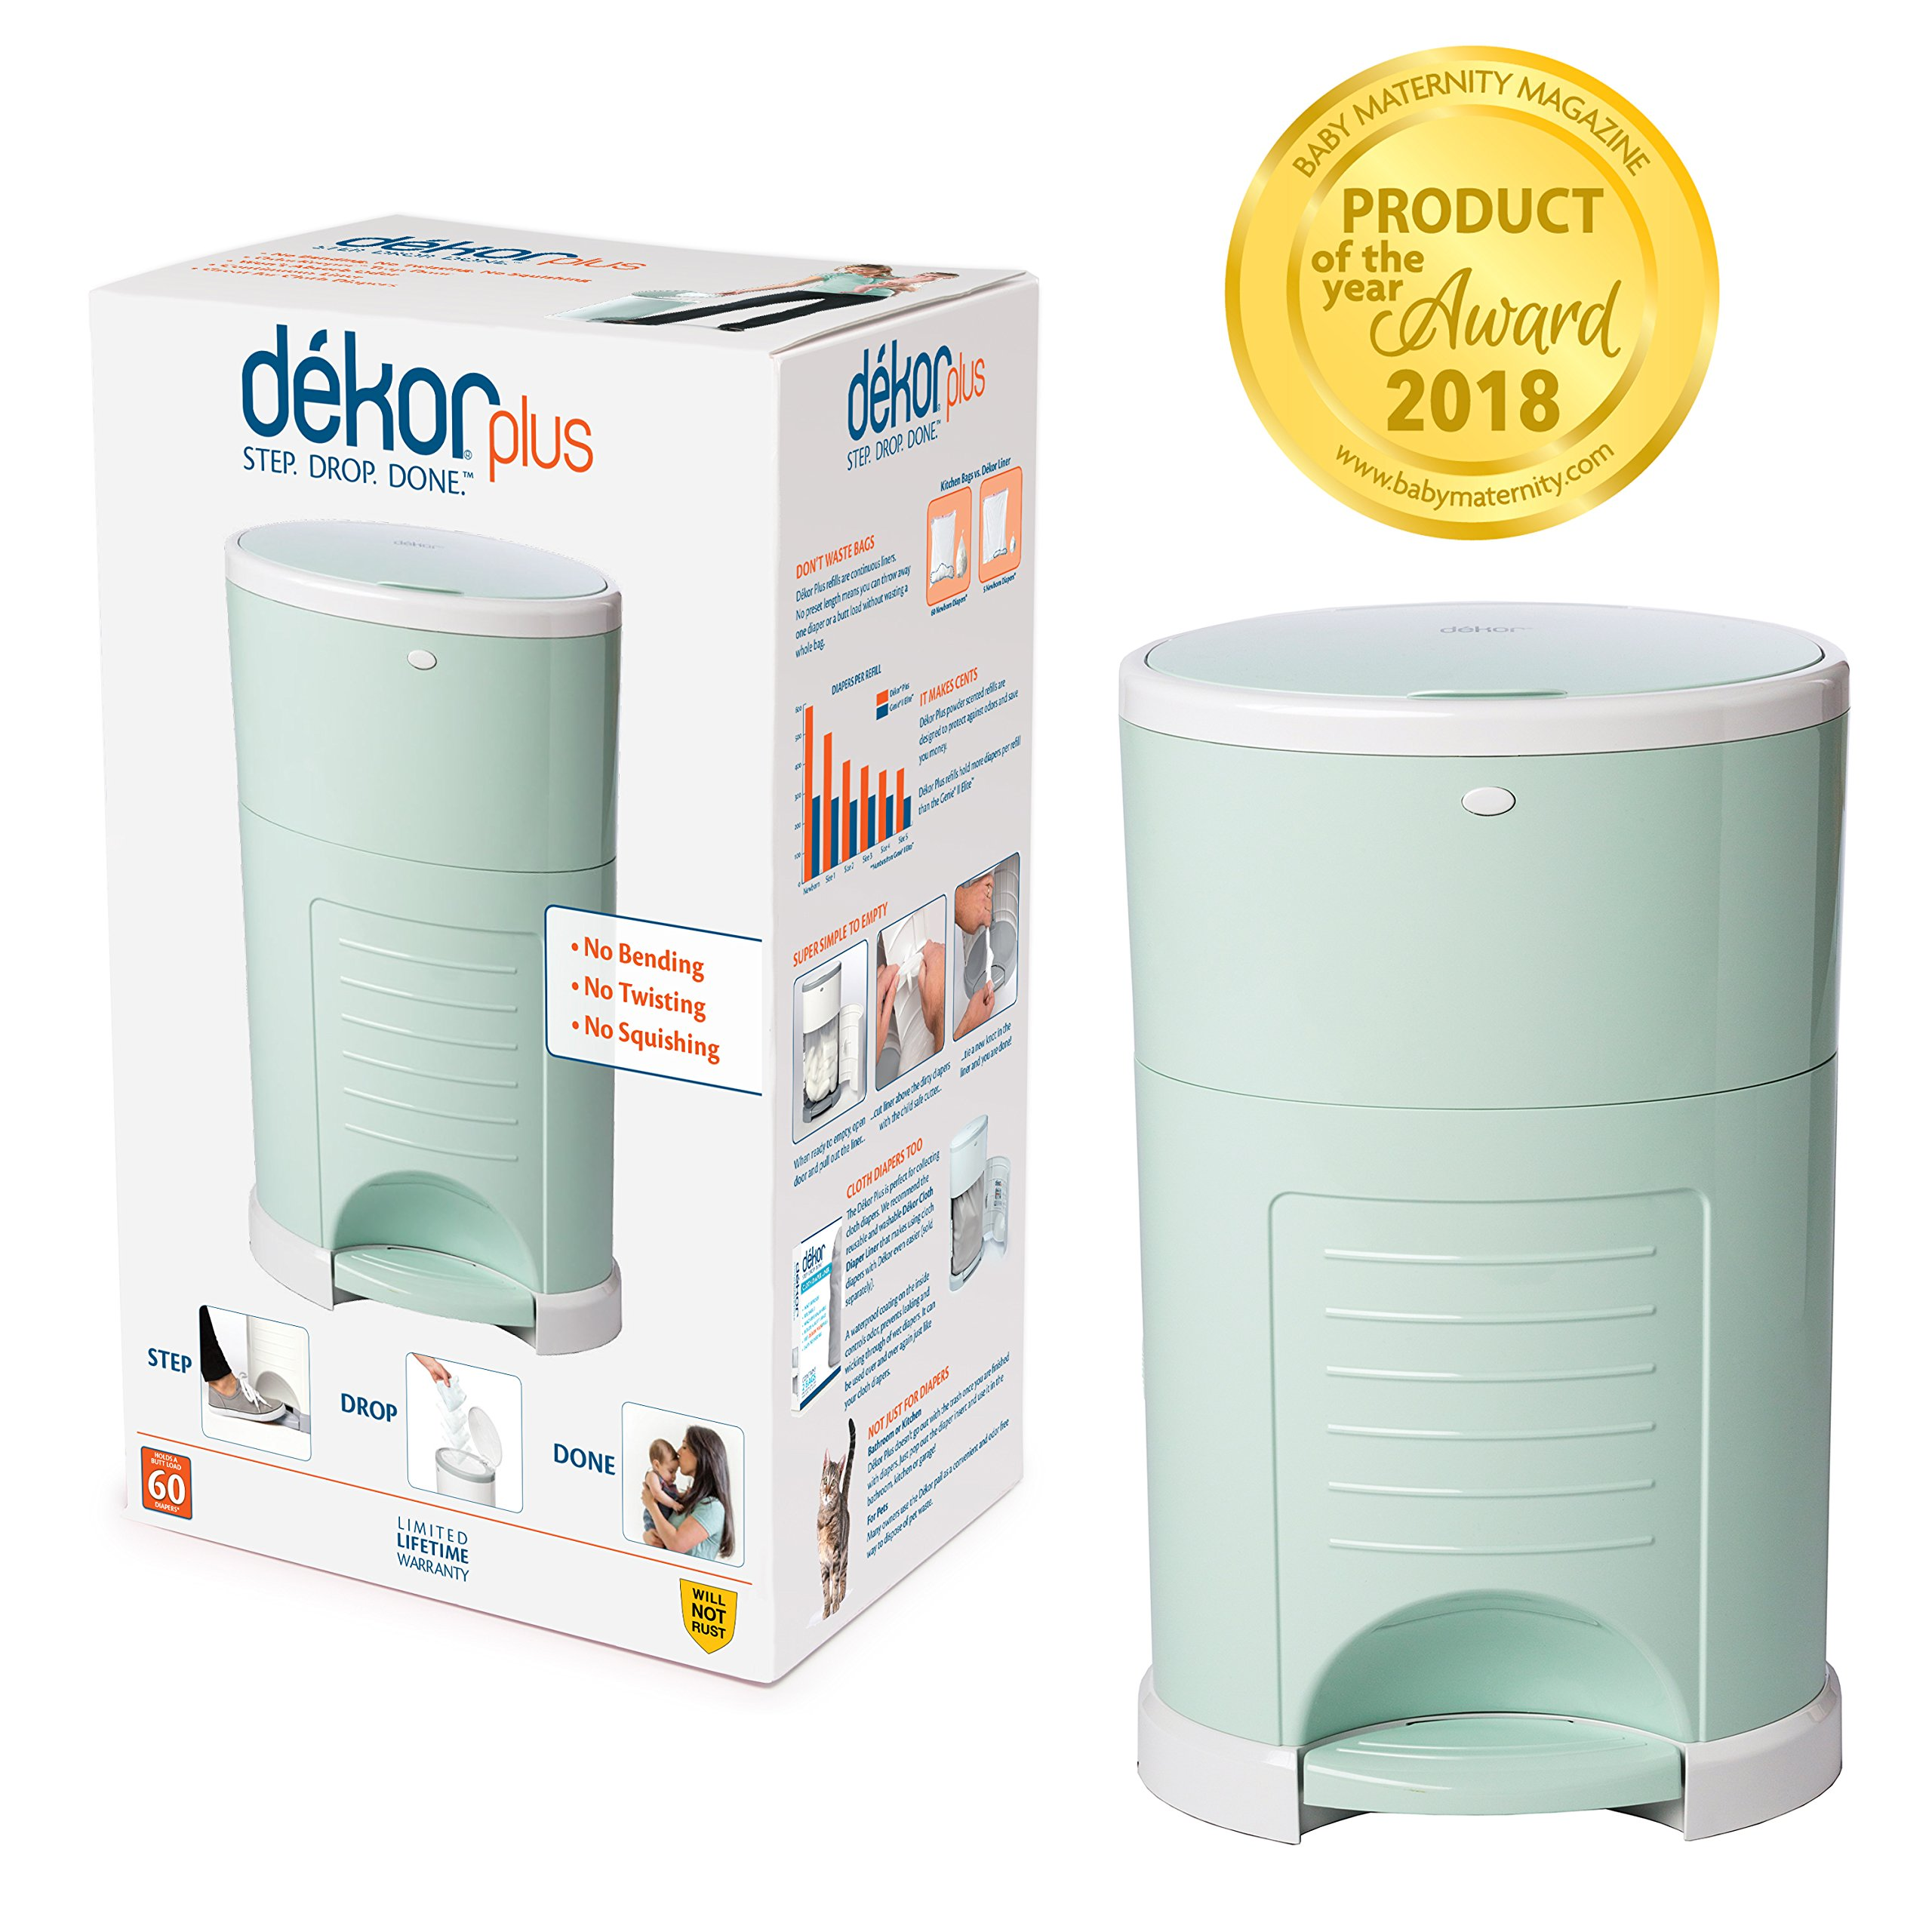 Dekor Plus Hands-Free Diaper Pail | Soft Mint | Easiest to Use | Just Step - Drop - Done | Doesn't Absorb Odors | 20 Second Bag Change | Most Economical Refill System |Great for Cloth Diapers by DEKOR